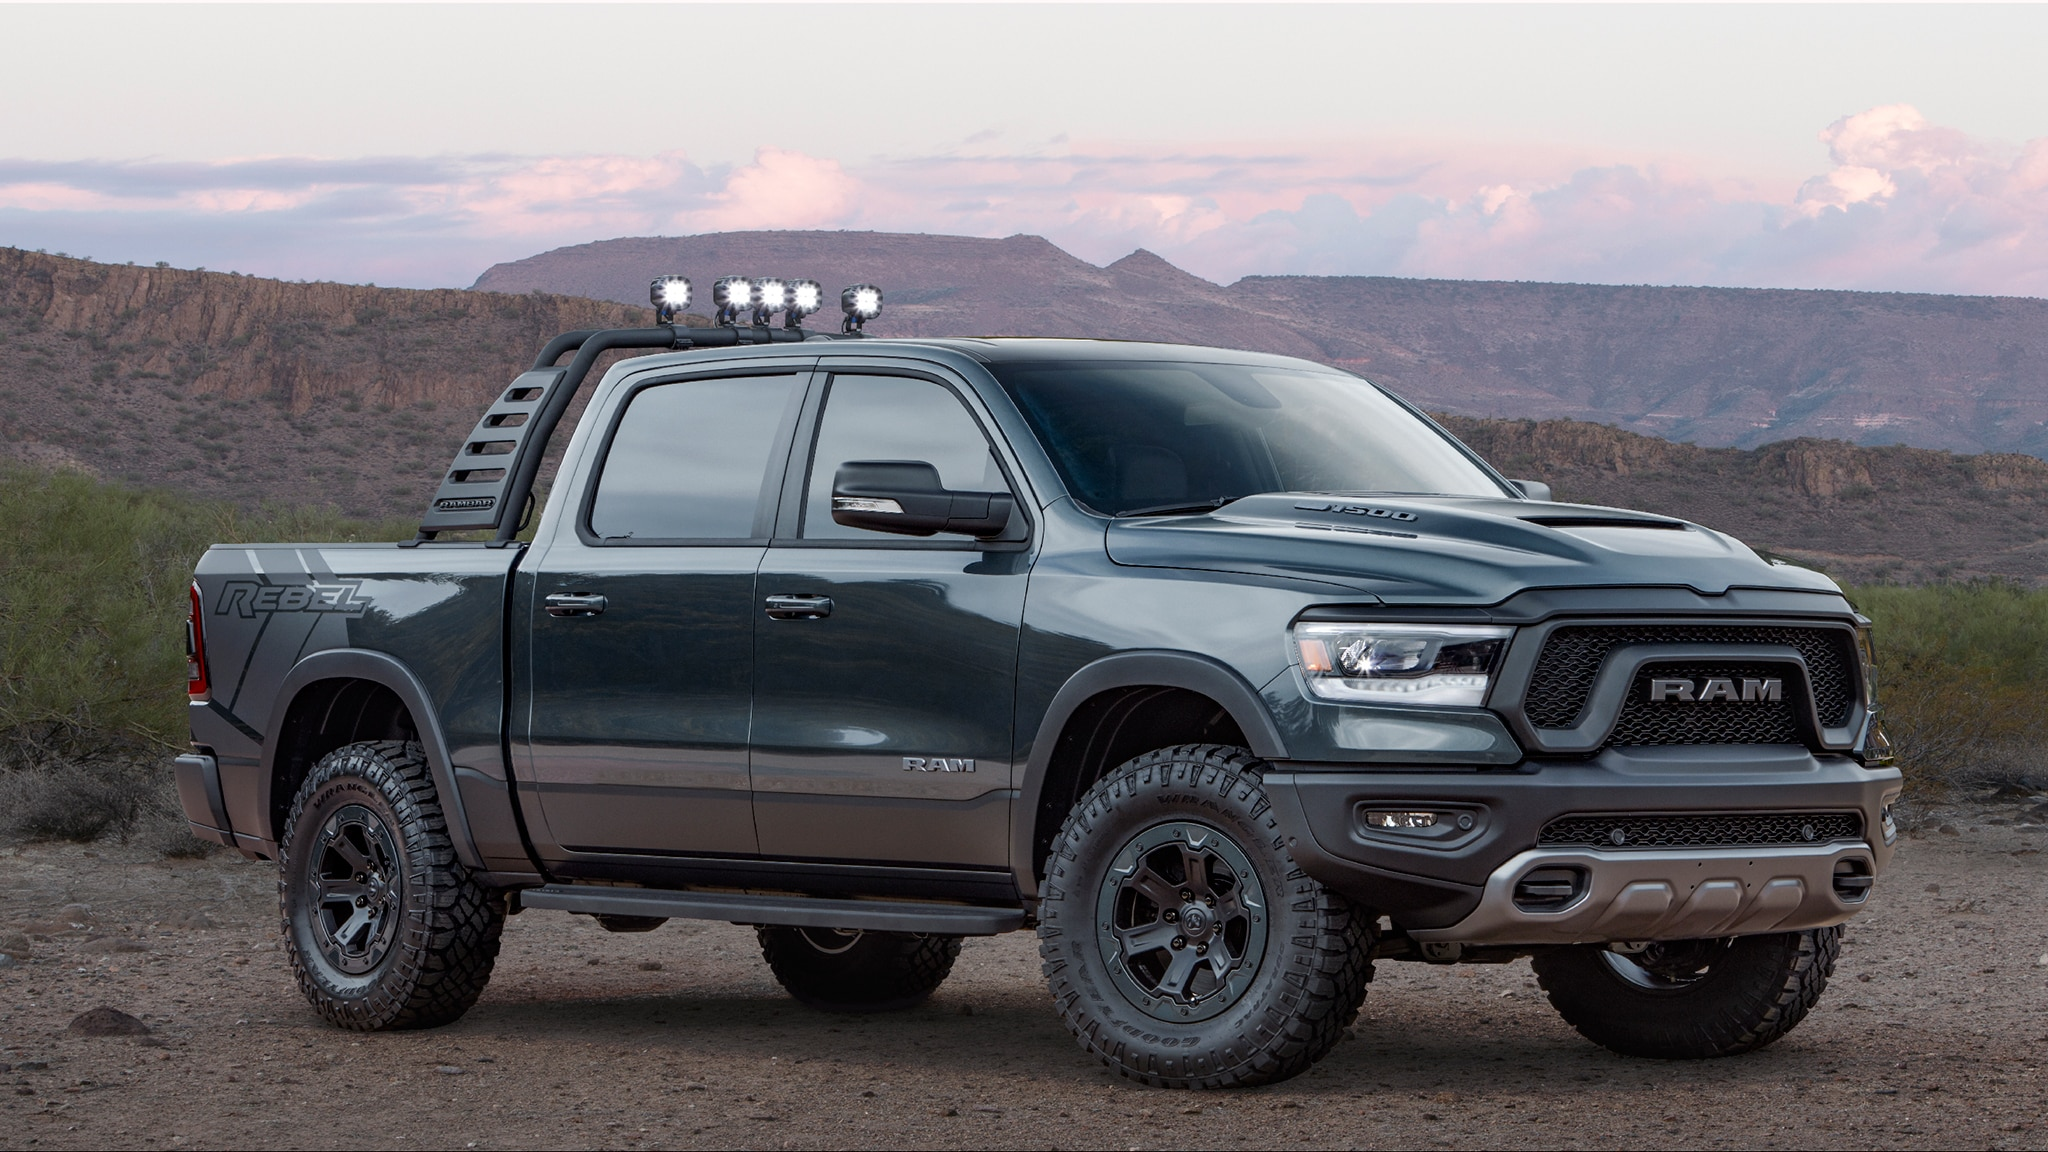 Ram Rides Into SEMA With Two 1500 Pickup Truck Concepts